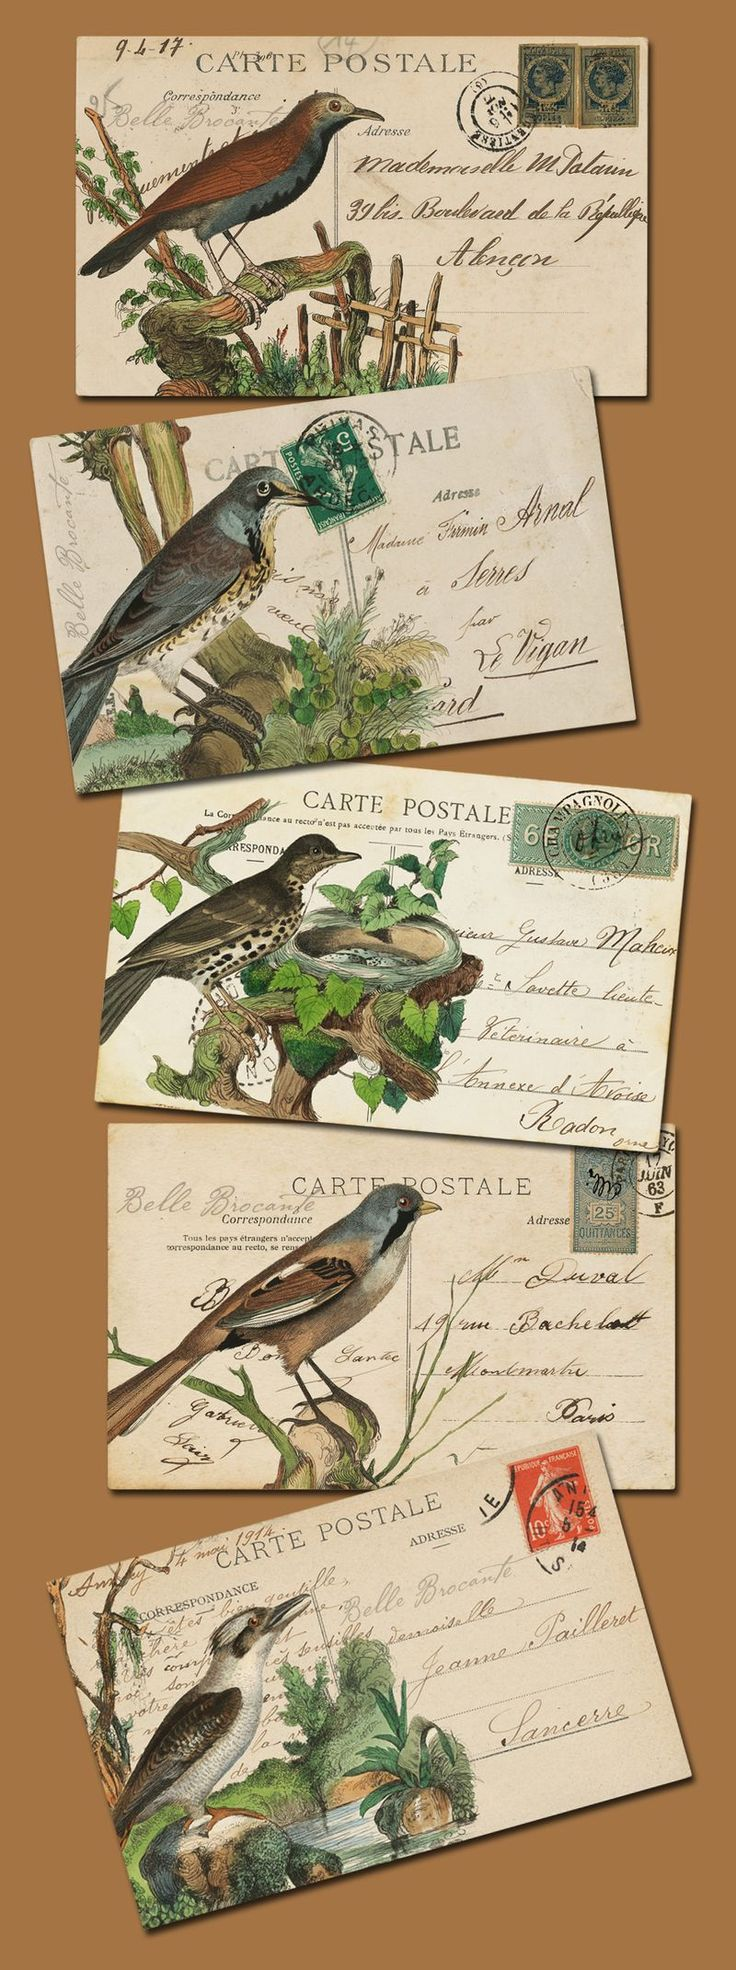 Ornithographers' keepsakes. 19th century - early 20th century France. Highly collectable